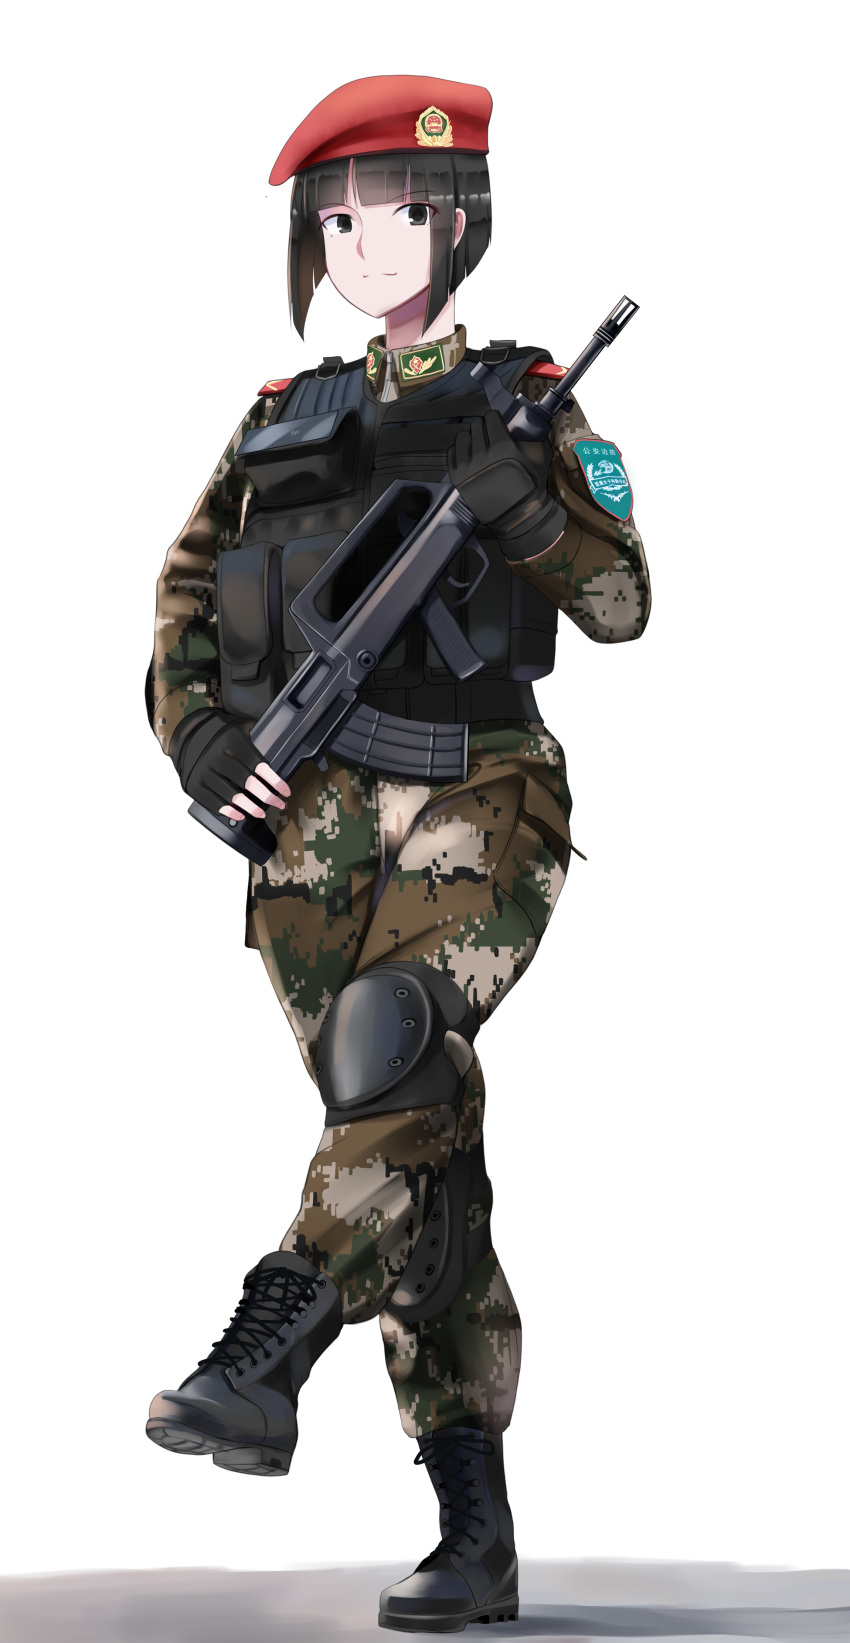 1girl absurdres assault_rifle bangs beret black_eyes black_hair blunt_bangs bob_cut boots bullpup china combat_boots commentary digital_camouflage epaulettes fingerless_gloves gloves gun hat highres knee_pads load_bearing_vest looking_at_viewer marching military nguyen_tam_lee original qbz-95 rifle short_hair simple_background soldier solo weapon white_background